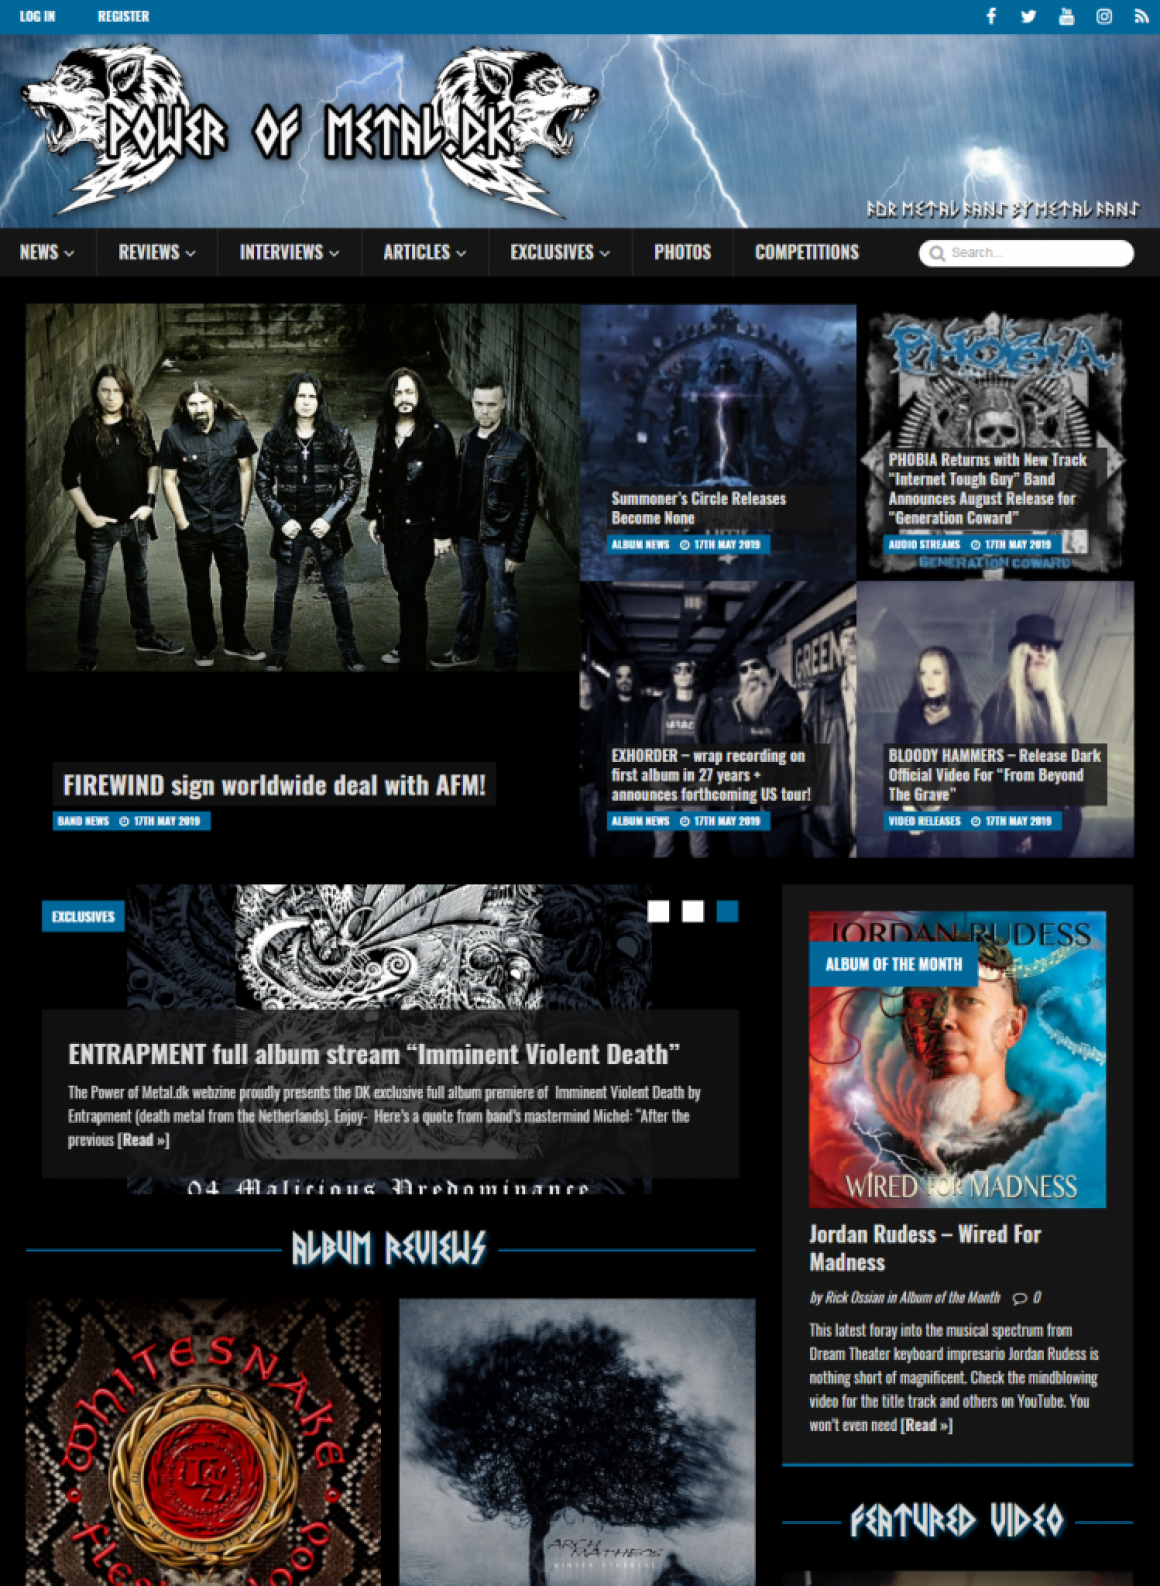 Power Of Metal dk » For Metal fans by Metal fans (1)